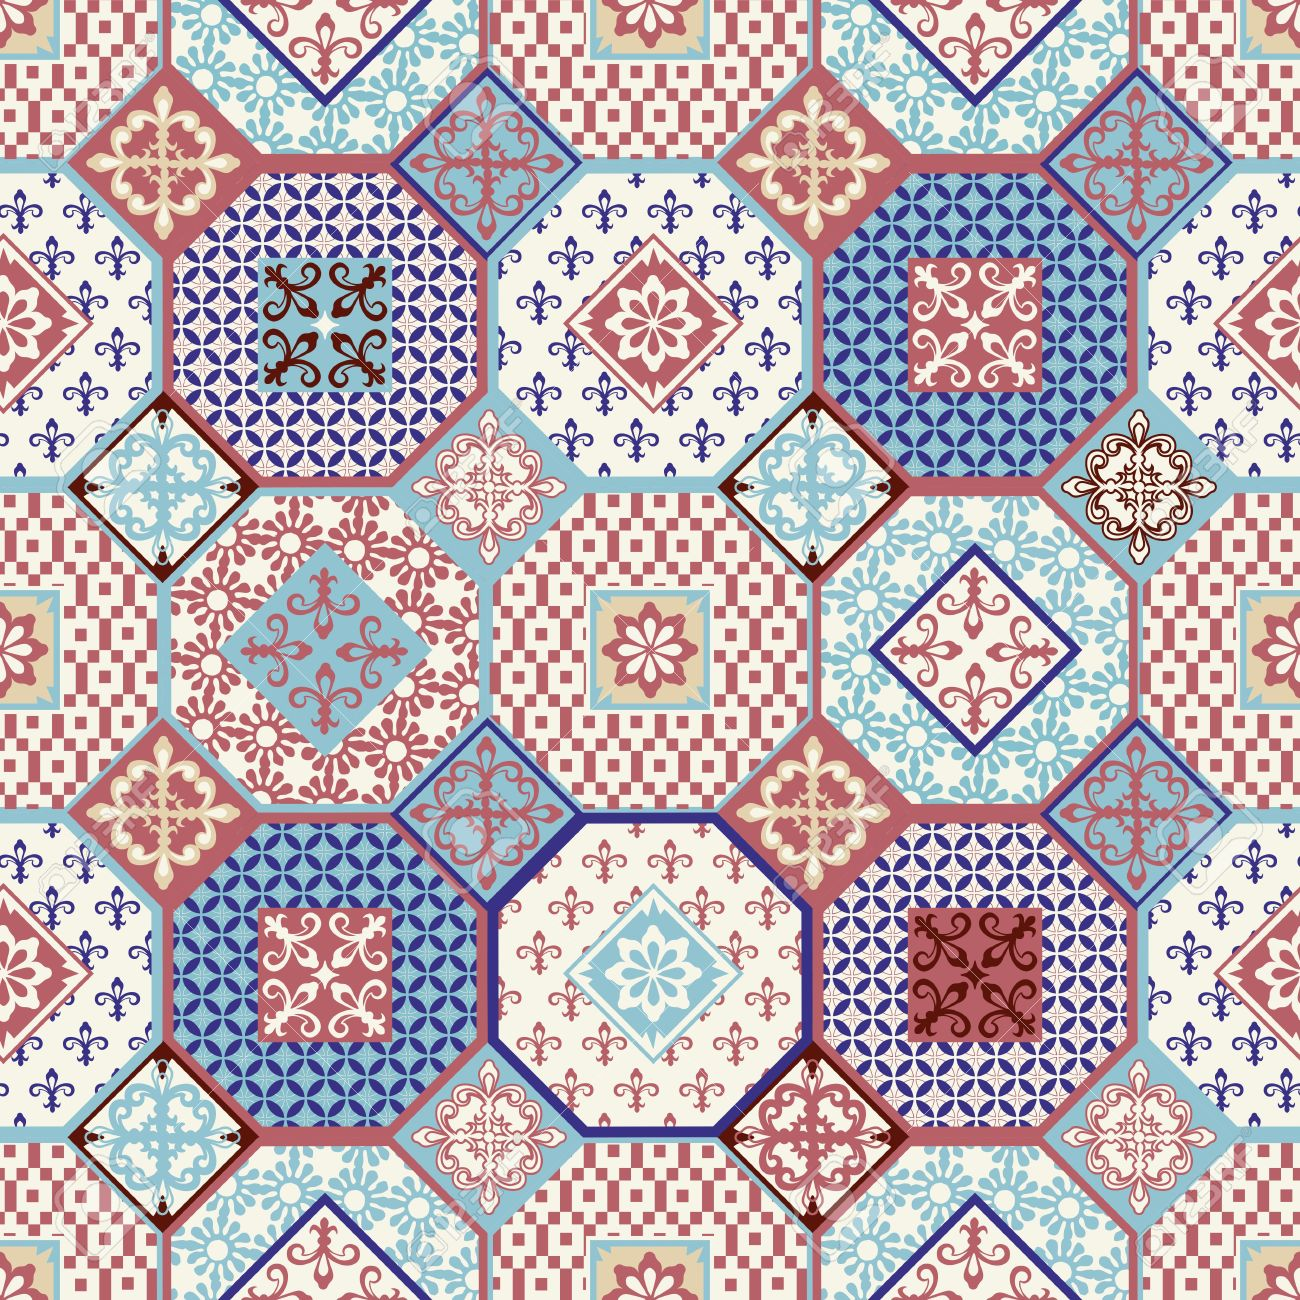 Vector of moroccan tile seamless pattern tile for design tile - Stylish Seamless Pattern Patchwork Mix Of Vintage From Moroccan Portuguese Azulejo Tiles Retro